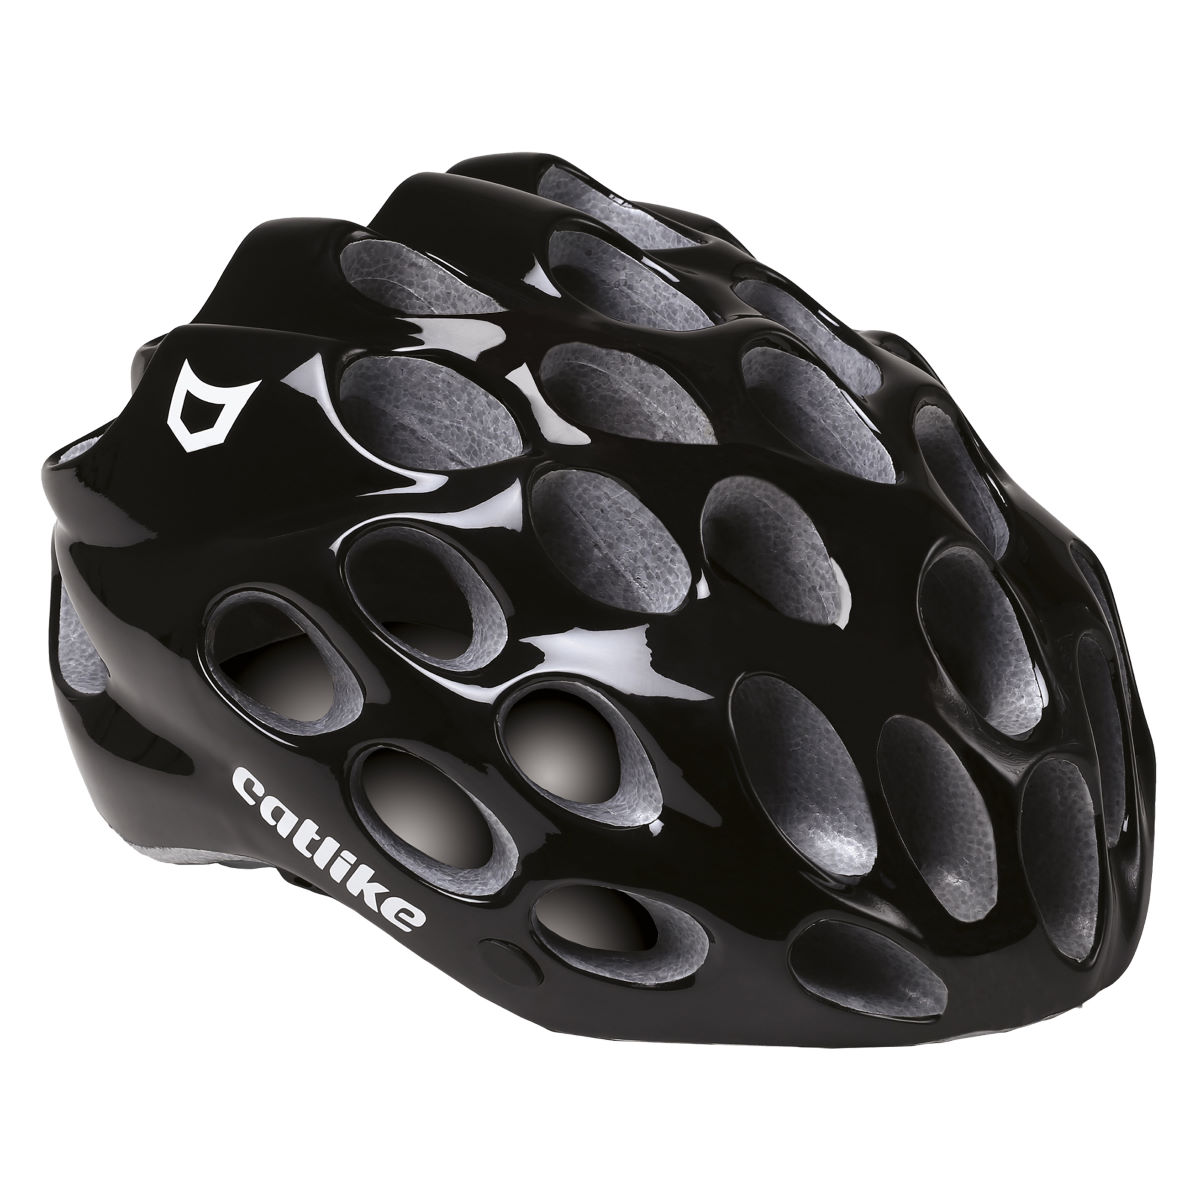 Casque Catlike Whisper - Small Glossy Black Casques de route